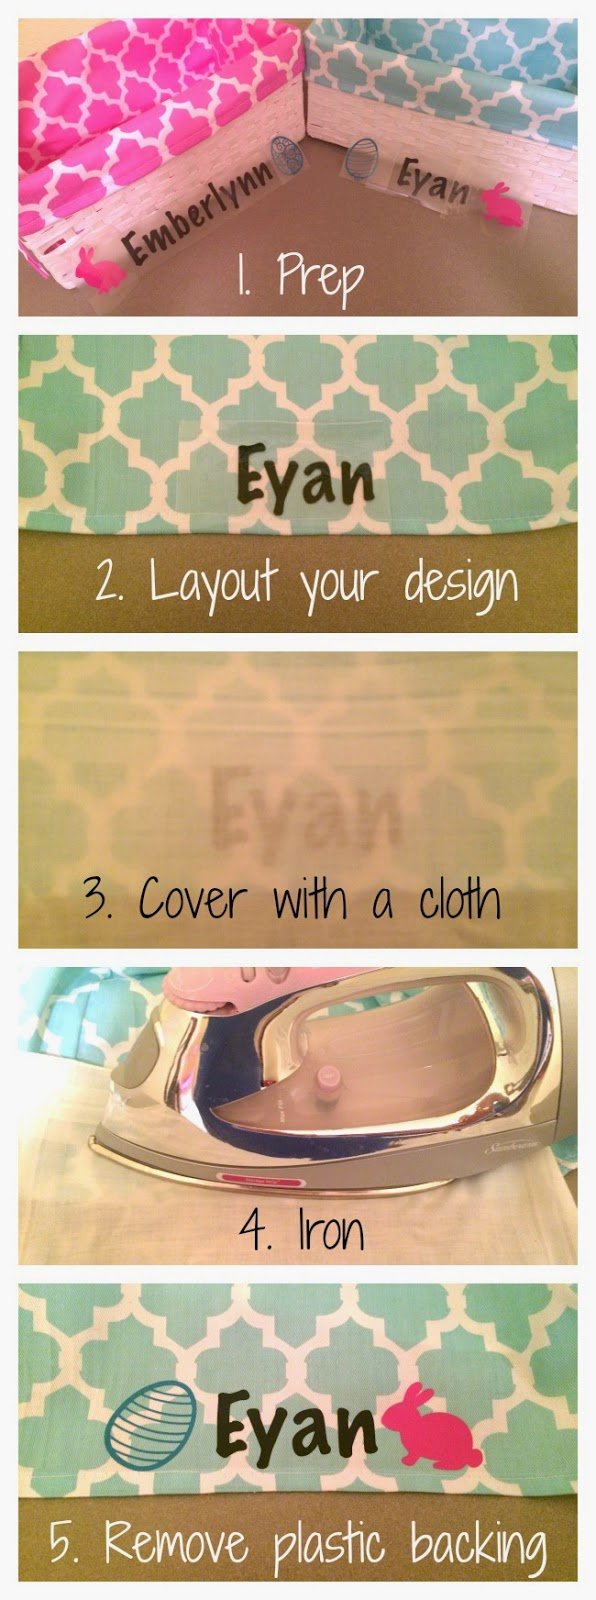 Personalized Easter Basket DIY, How to use heat transfer vinyl, how to set up silhouette and heat transfer vinyl, easter, crafts, tutorial with pictures